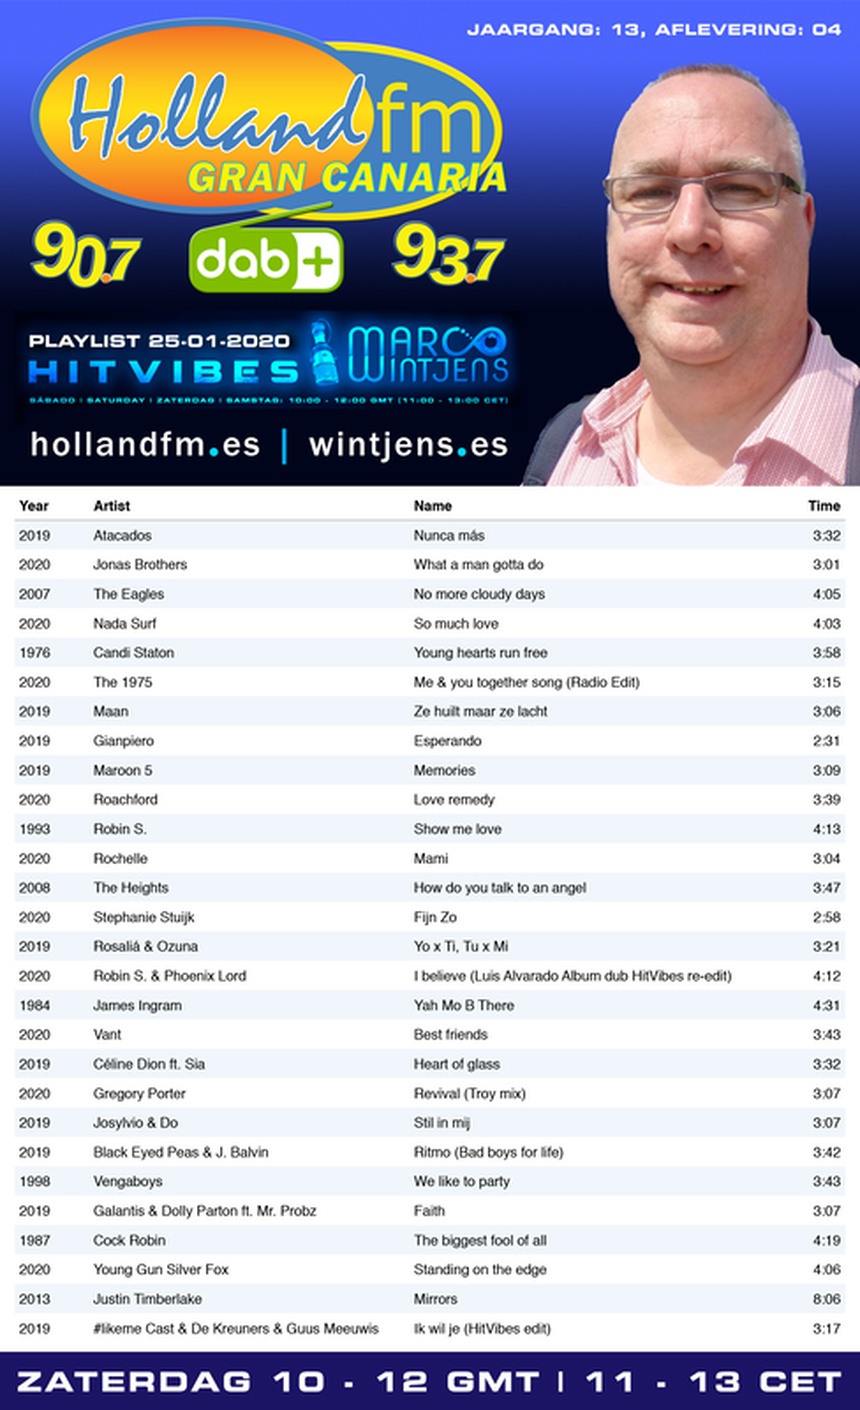 Playlist, HitVibes, Gran Canaria, Marco Wintjens, Holland FM, 25-01-2020